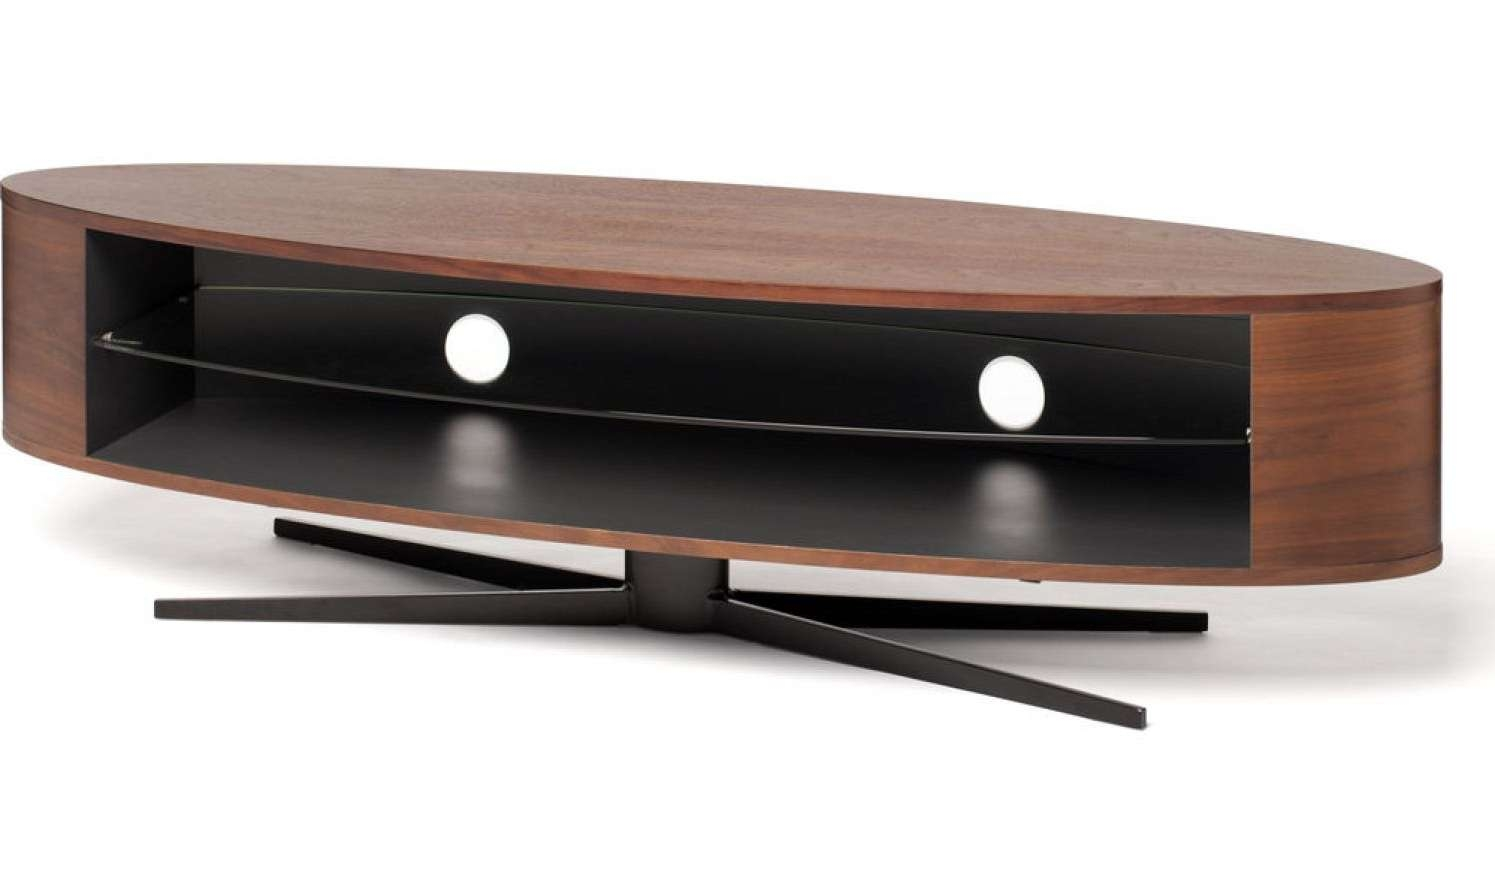 Tv : Engrossing Techlink Air Tv Stands 2 Favorite Techlink Air Tv For Techlink Air Tv Stands (View 14 of 20)